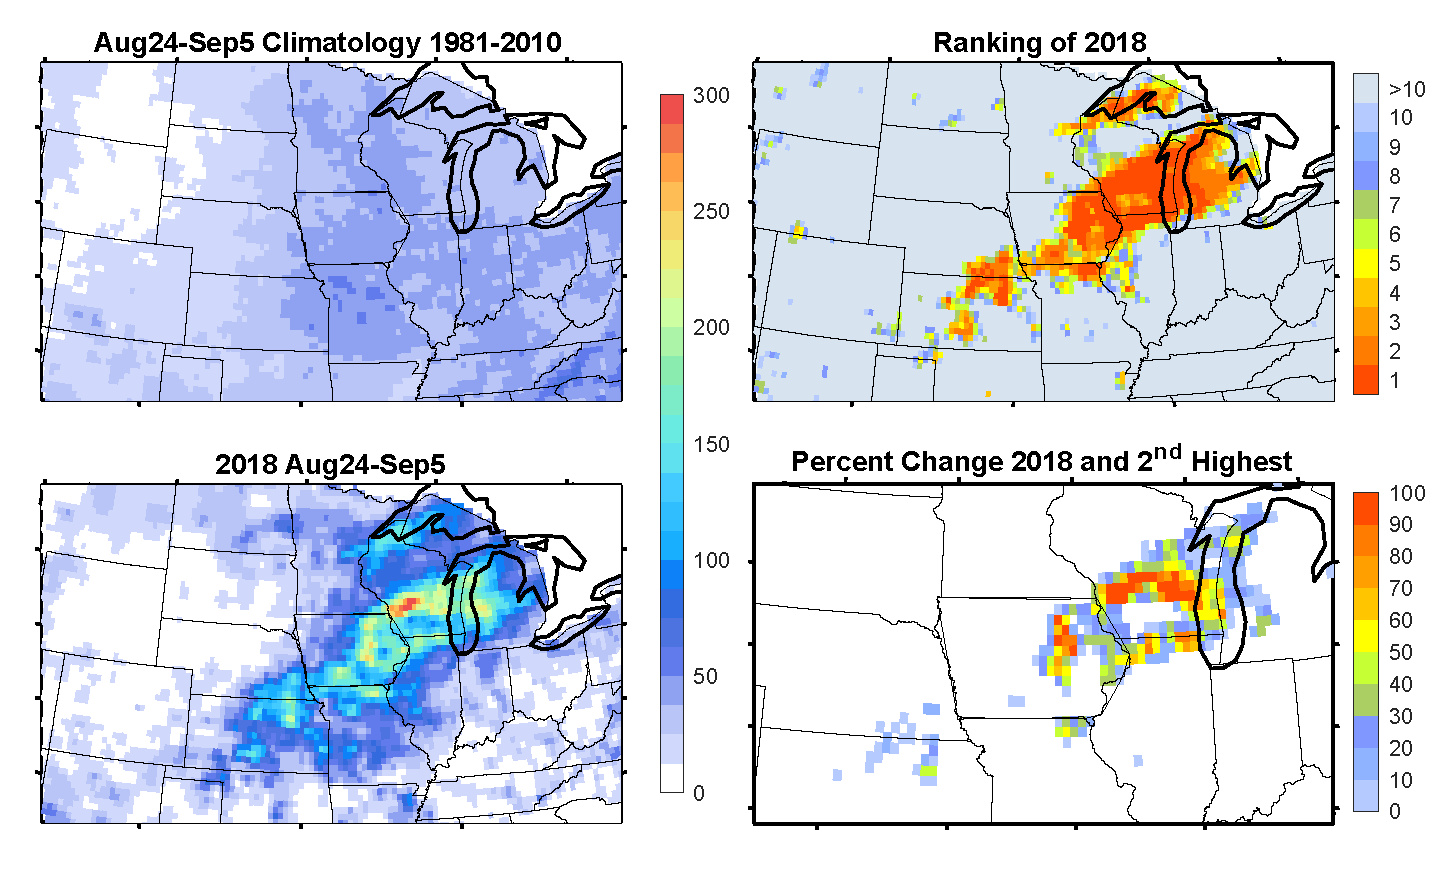 Four maps of the upper Midwest showing recent rainfall using colors from blue to red.